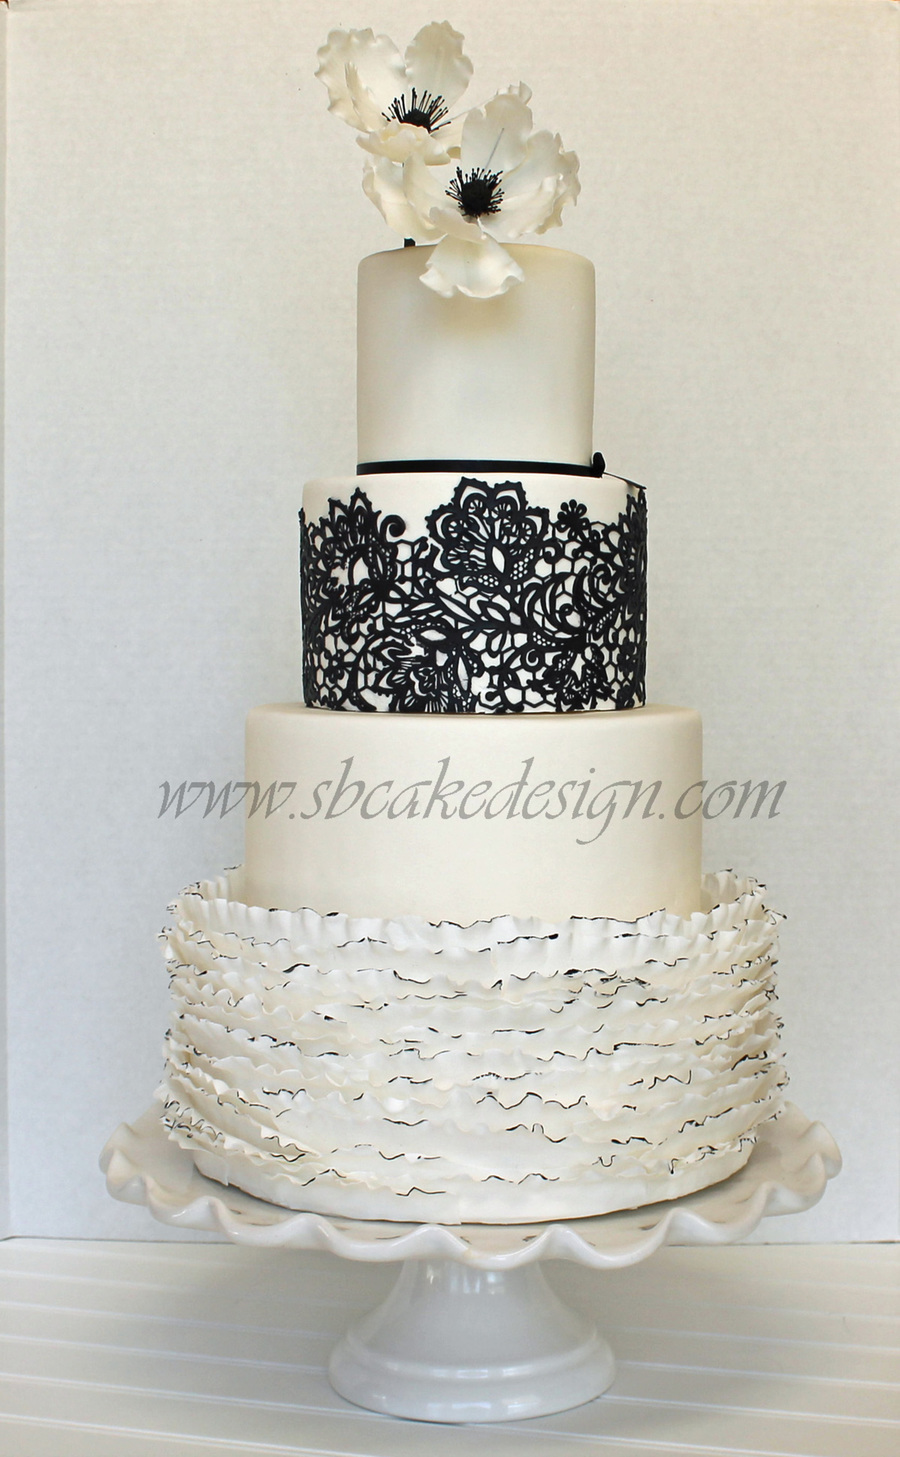 white wedding cakes black and white wedding cake cakecentral 27382